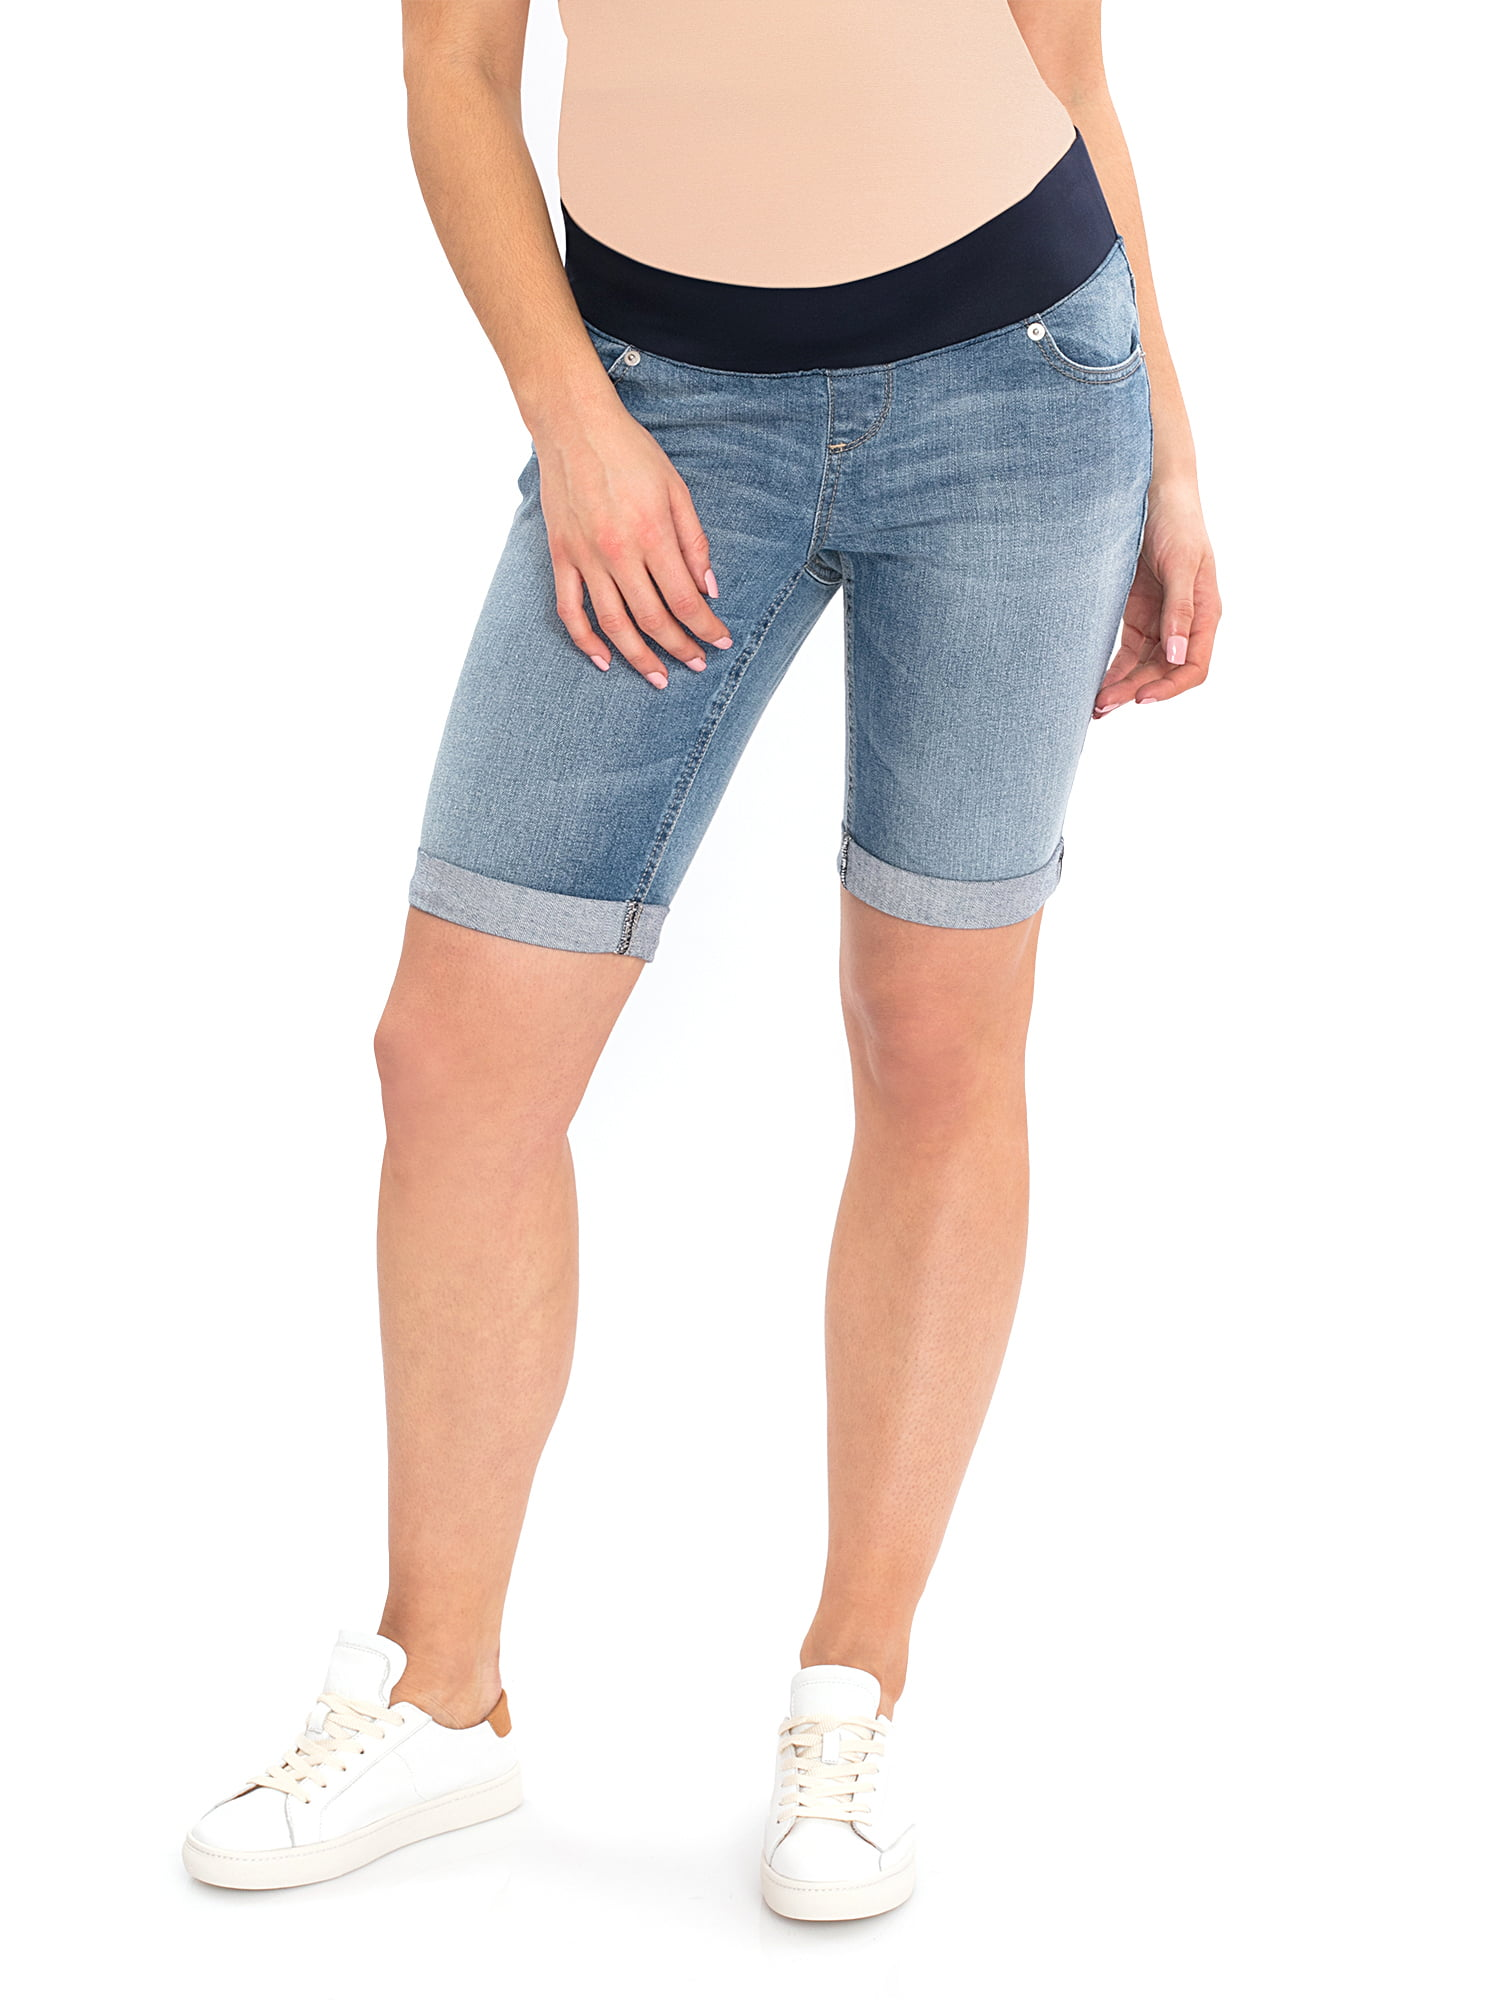 Maternity Denim Bermuda Shorts by Garan, Inc.